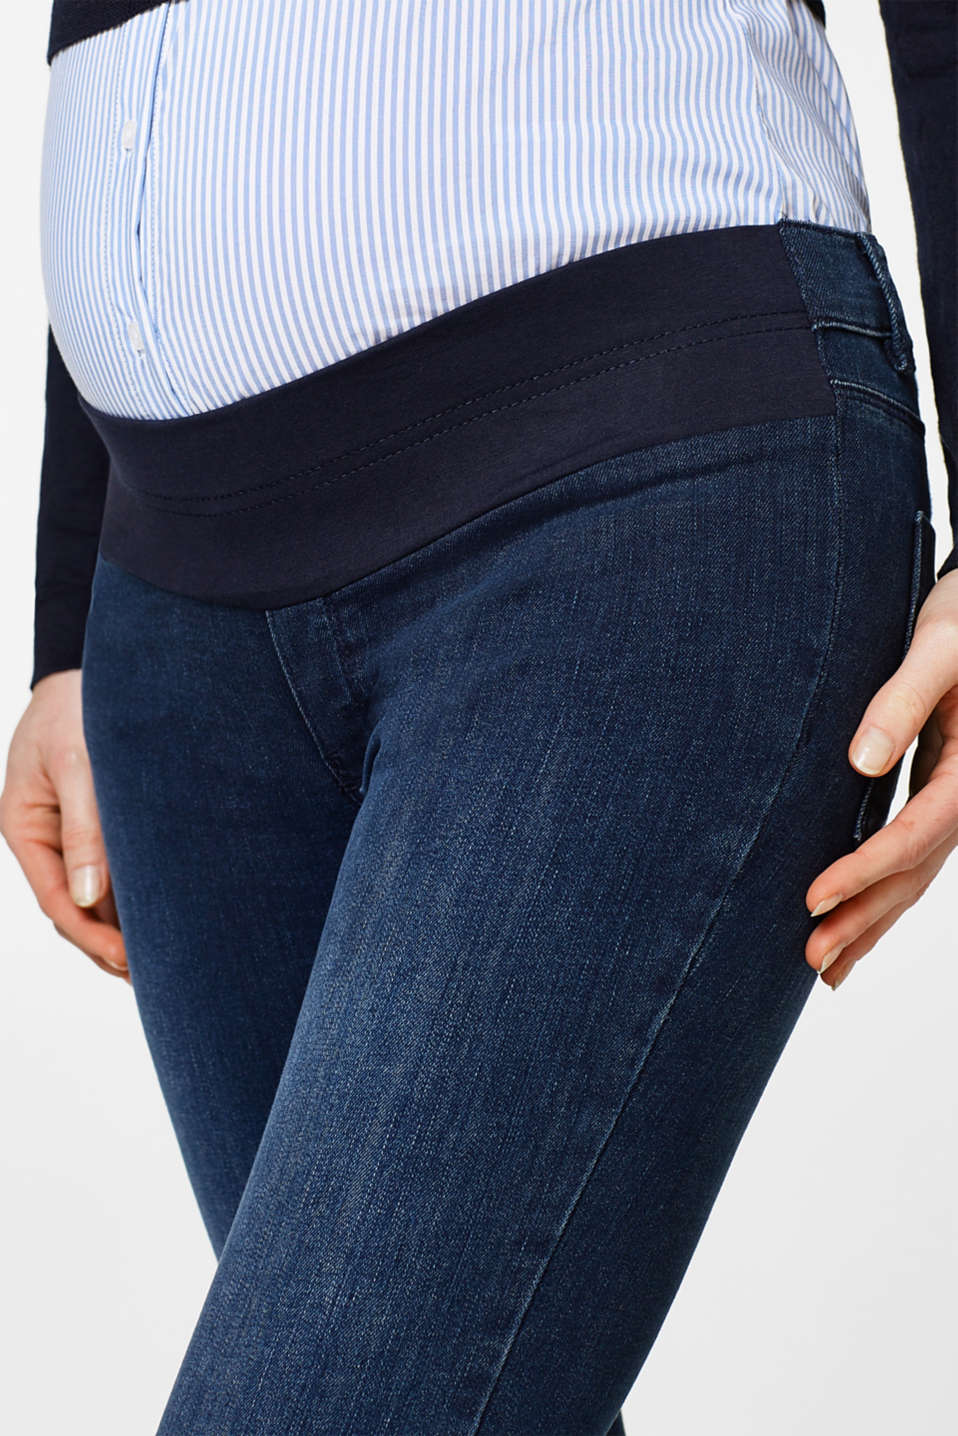 Jeggings with a below-bump waistband